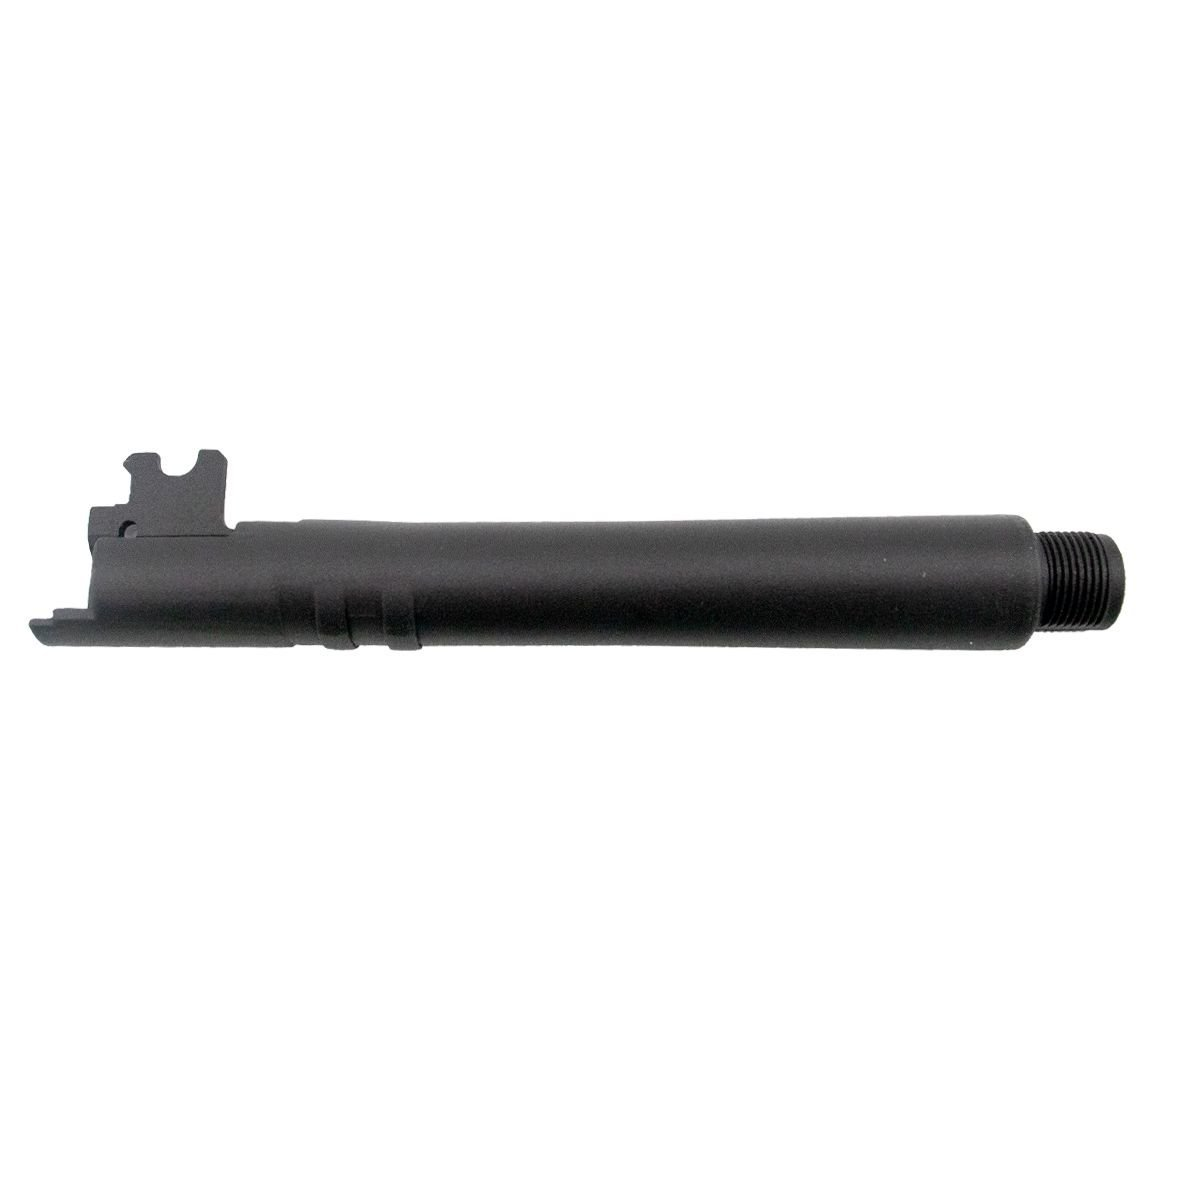 View larger image of Valken BY HICAPA Suppressor and Barrel Kit